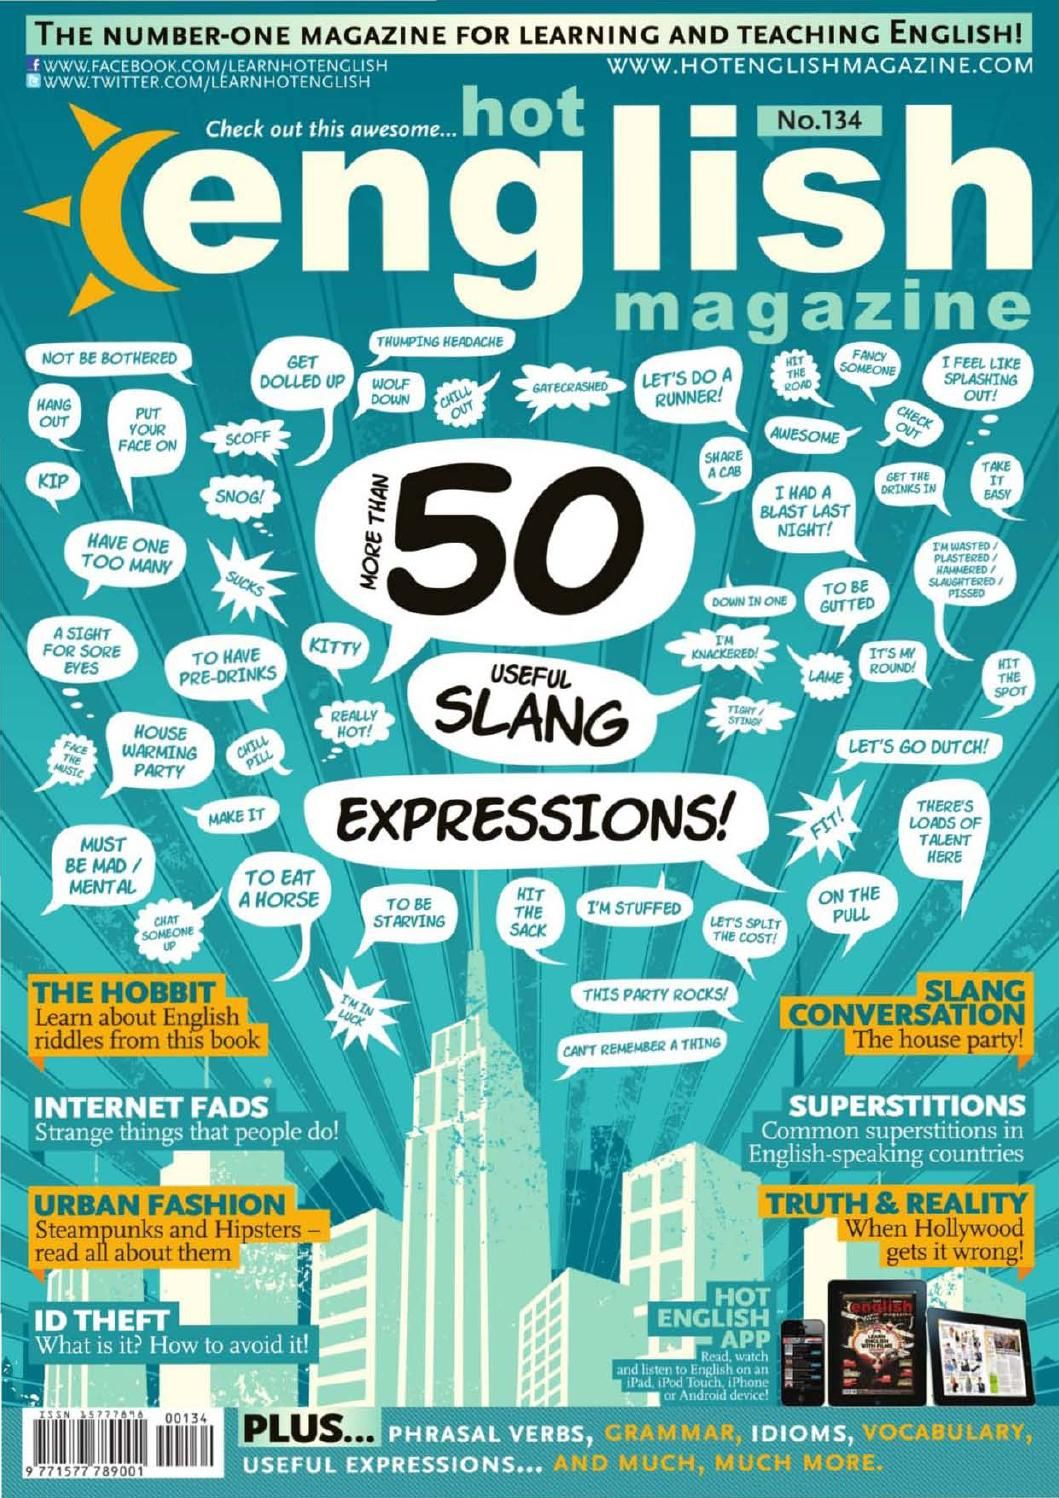 Hot English Magazine Number 134 50 Slang Expressions Hobbit Riddles And Reading